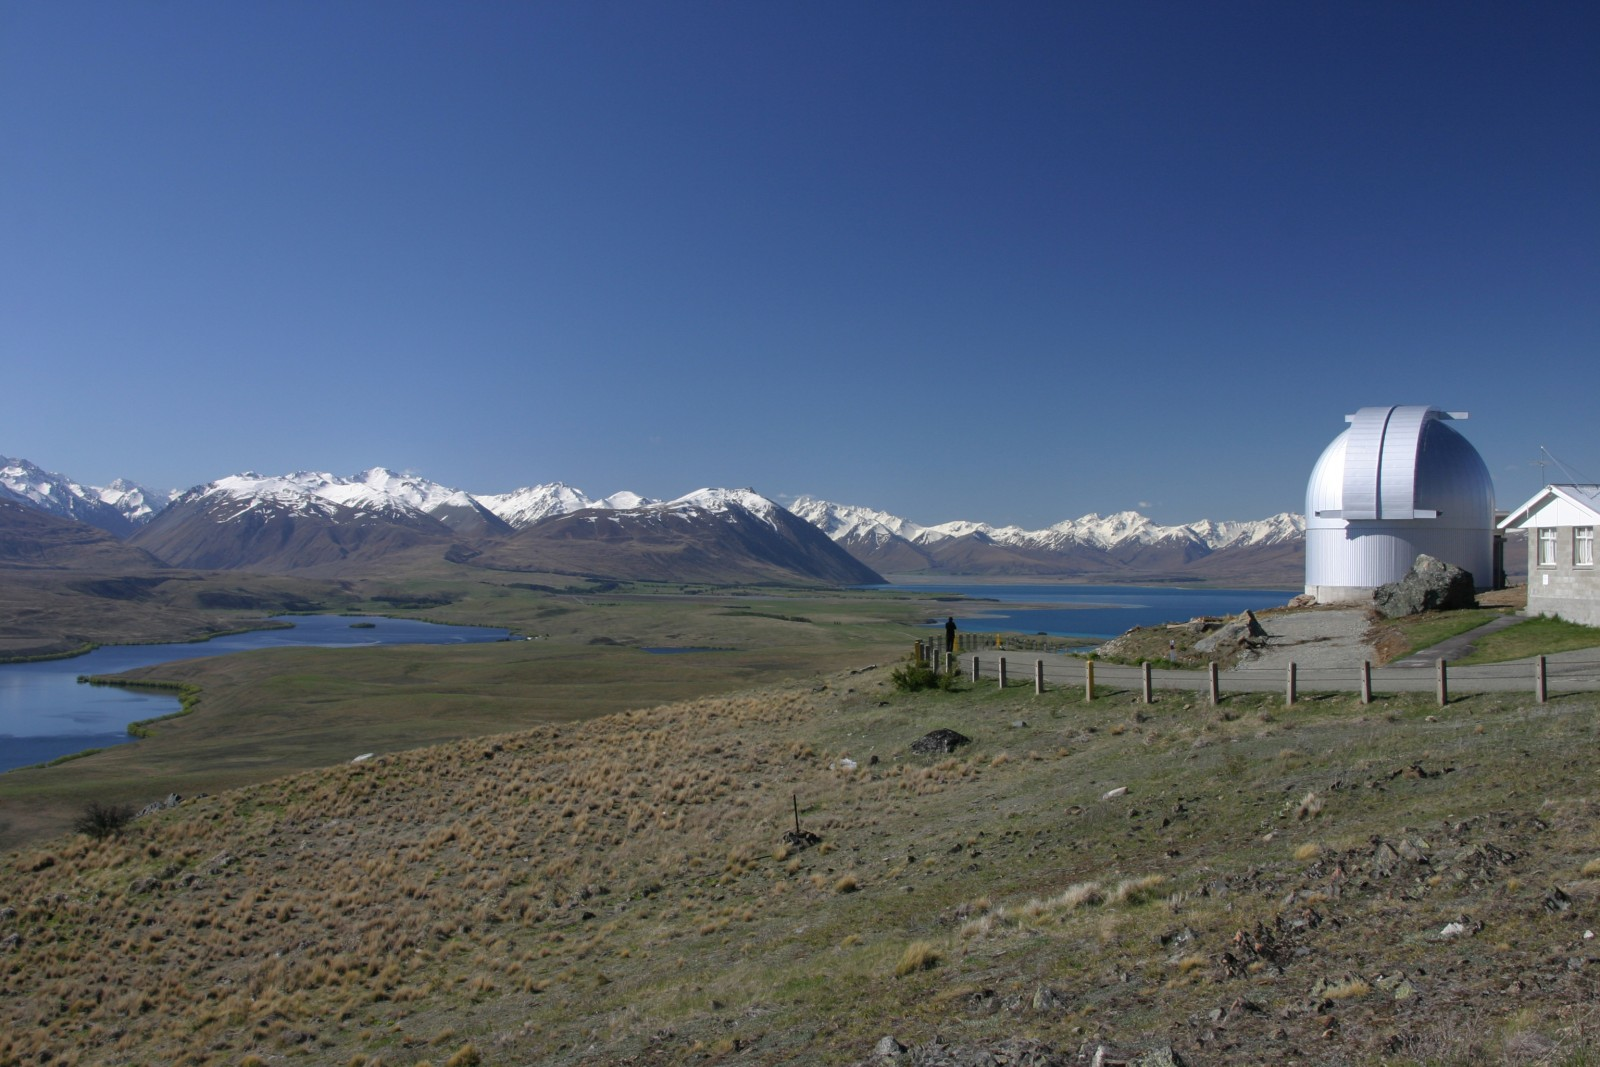 The MOA telescope at Mt John Observatory lies east of the Southern Alps with Lake Alexandrina to the left, and Lake Tekapo to the right (opposite). The telescope was commissioned with a grant from the Japanese government. Built in Japan and assembled in New Zealand in 2004, the telescope utilises a camera with ten CCDs and 80 million pixels to look for dark matter and extrasolar planets.